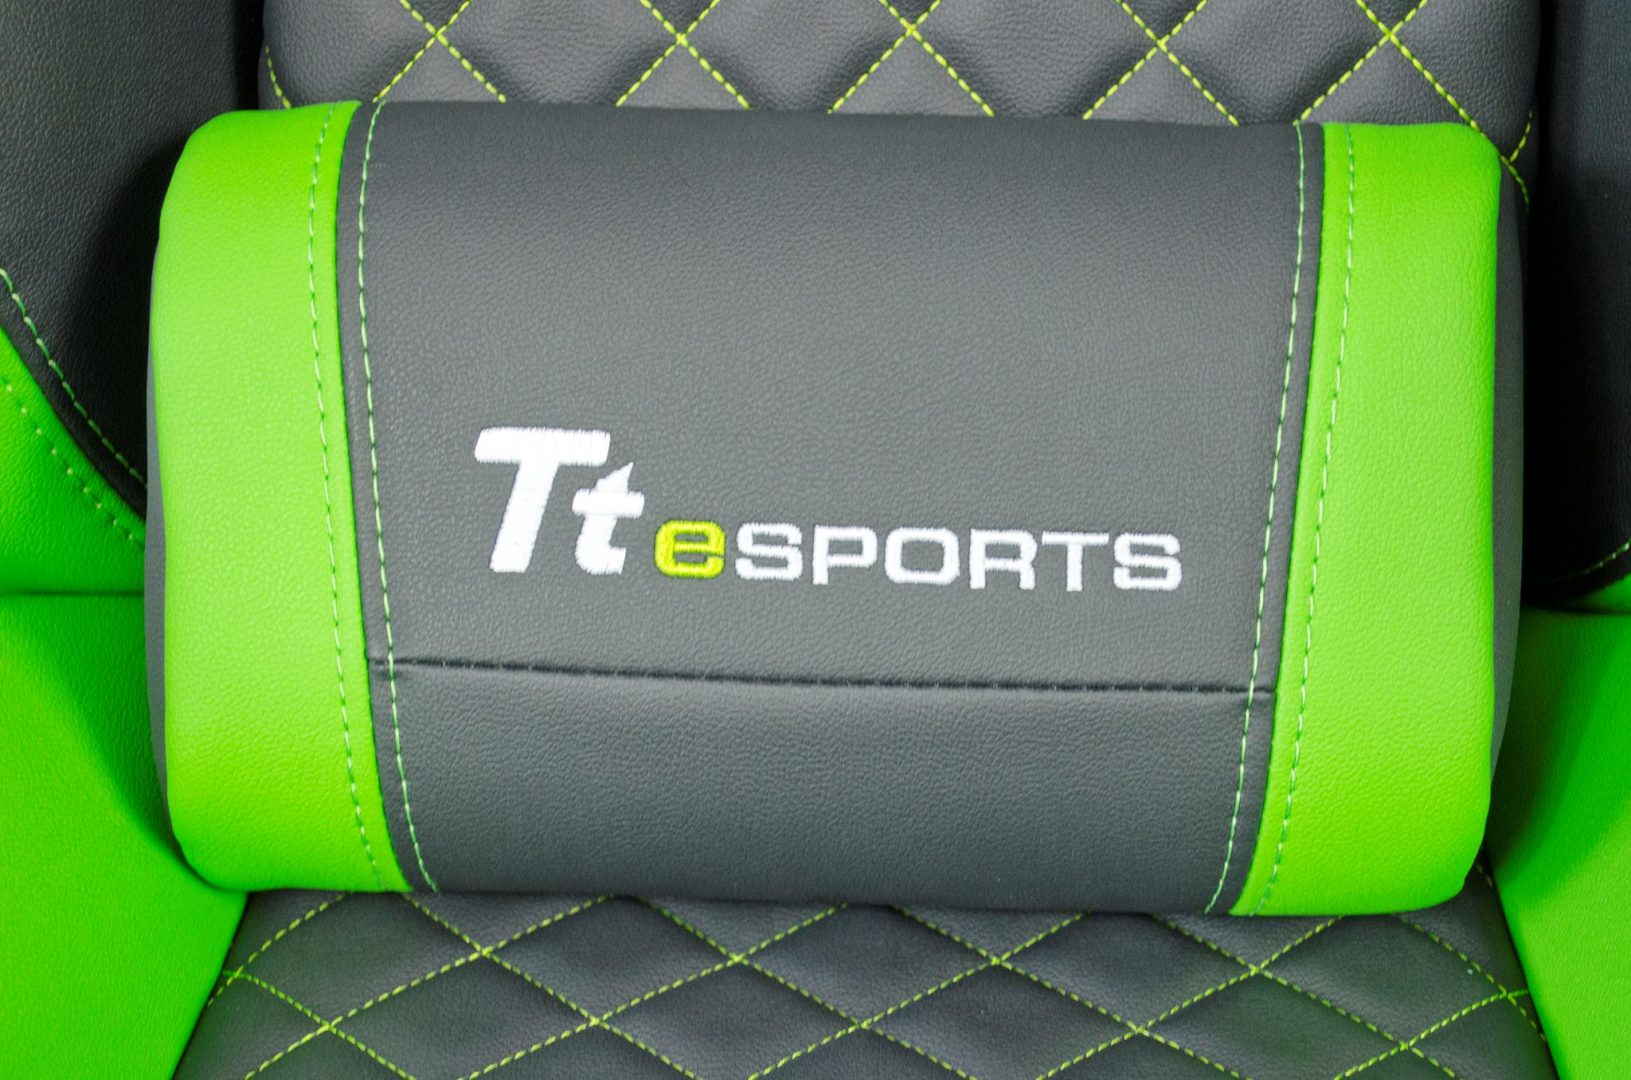 tt esports gt comfort gaming chair_18